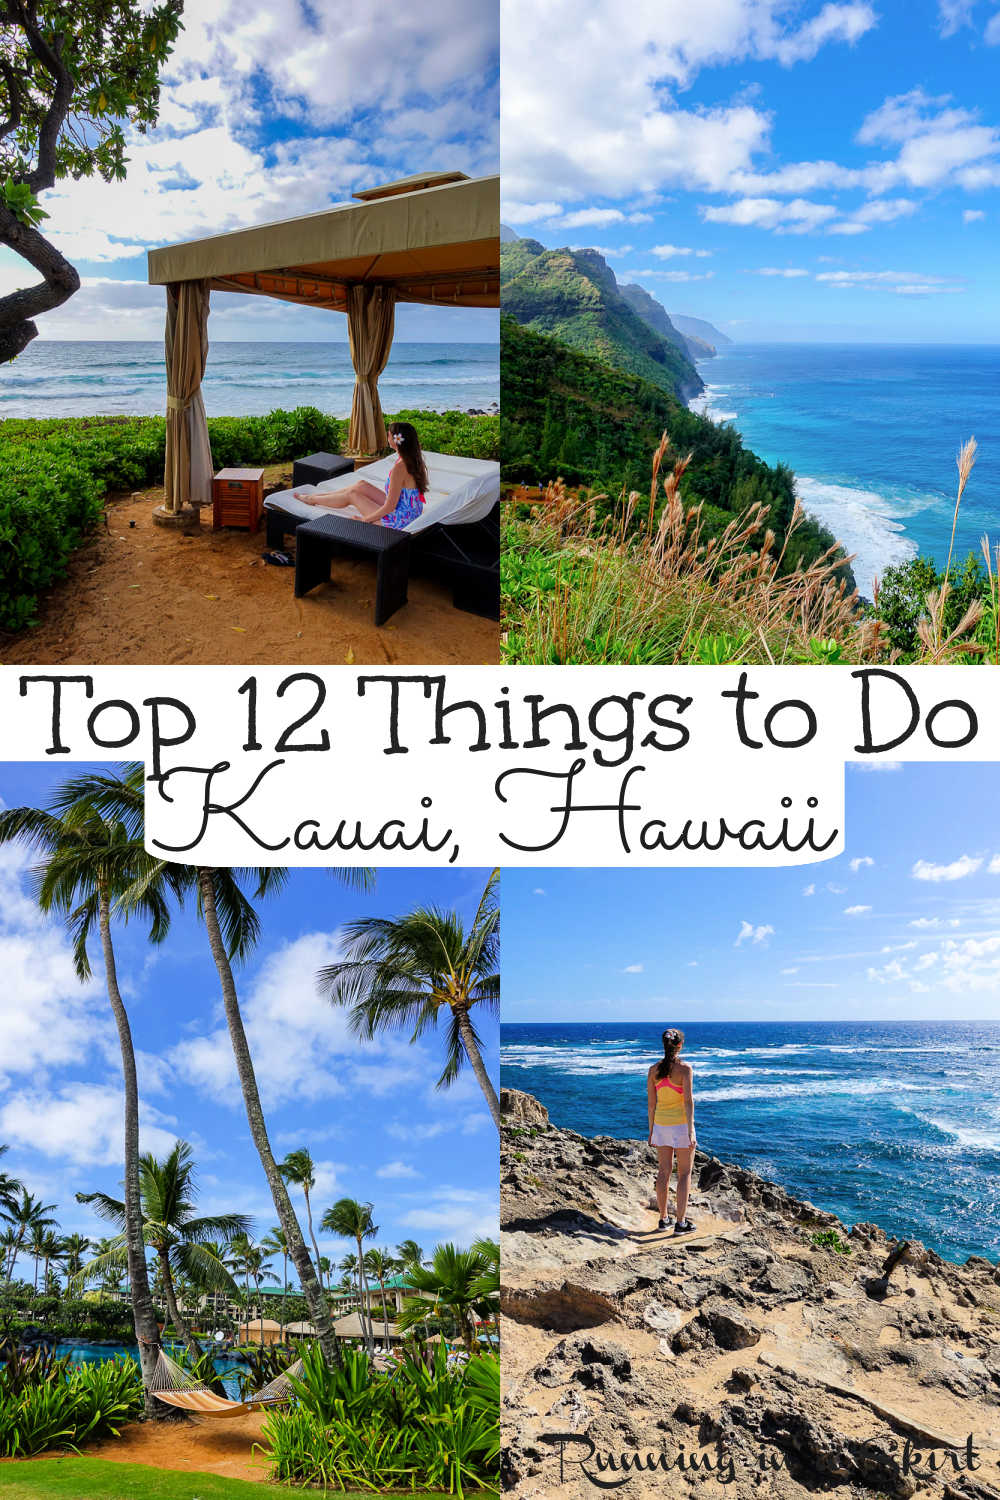 Top 12 Kauai Experiences - The BEST Things to Do in Kauai, Hawaii. From hiking, waterfalls, can't miss activities, food, restaurants, the best Luau, farmers markets, beaches, helicopter tour and resorts... these are adventures you must do while on the island. / Running in a Skirt via @juliewunder